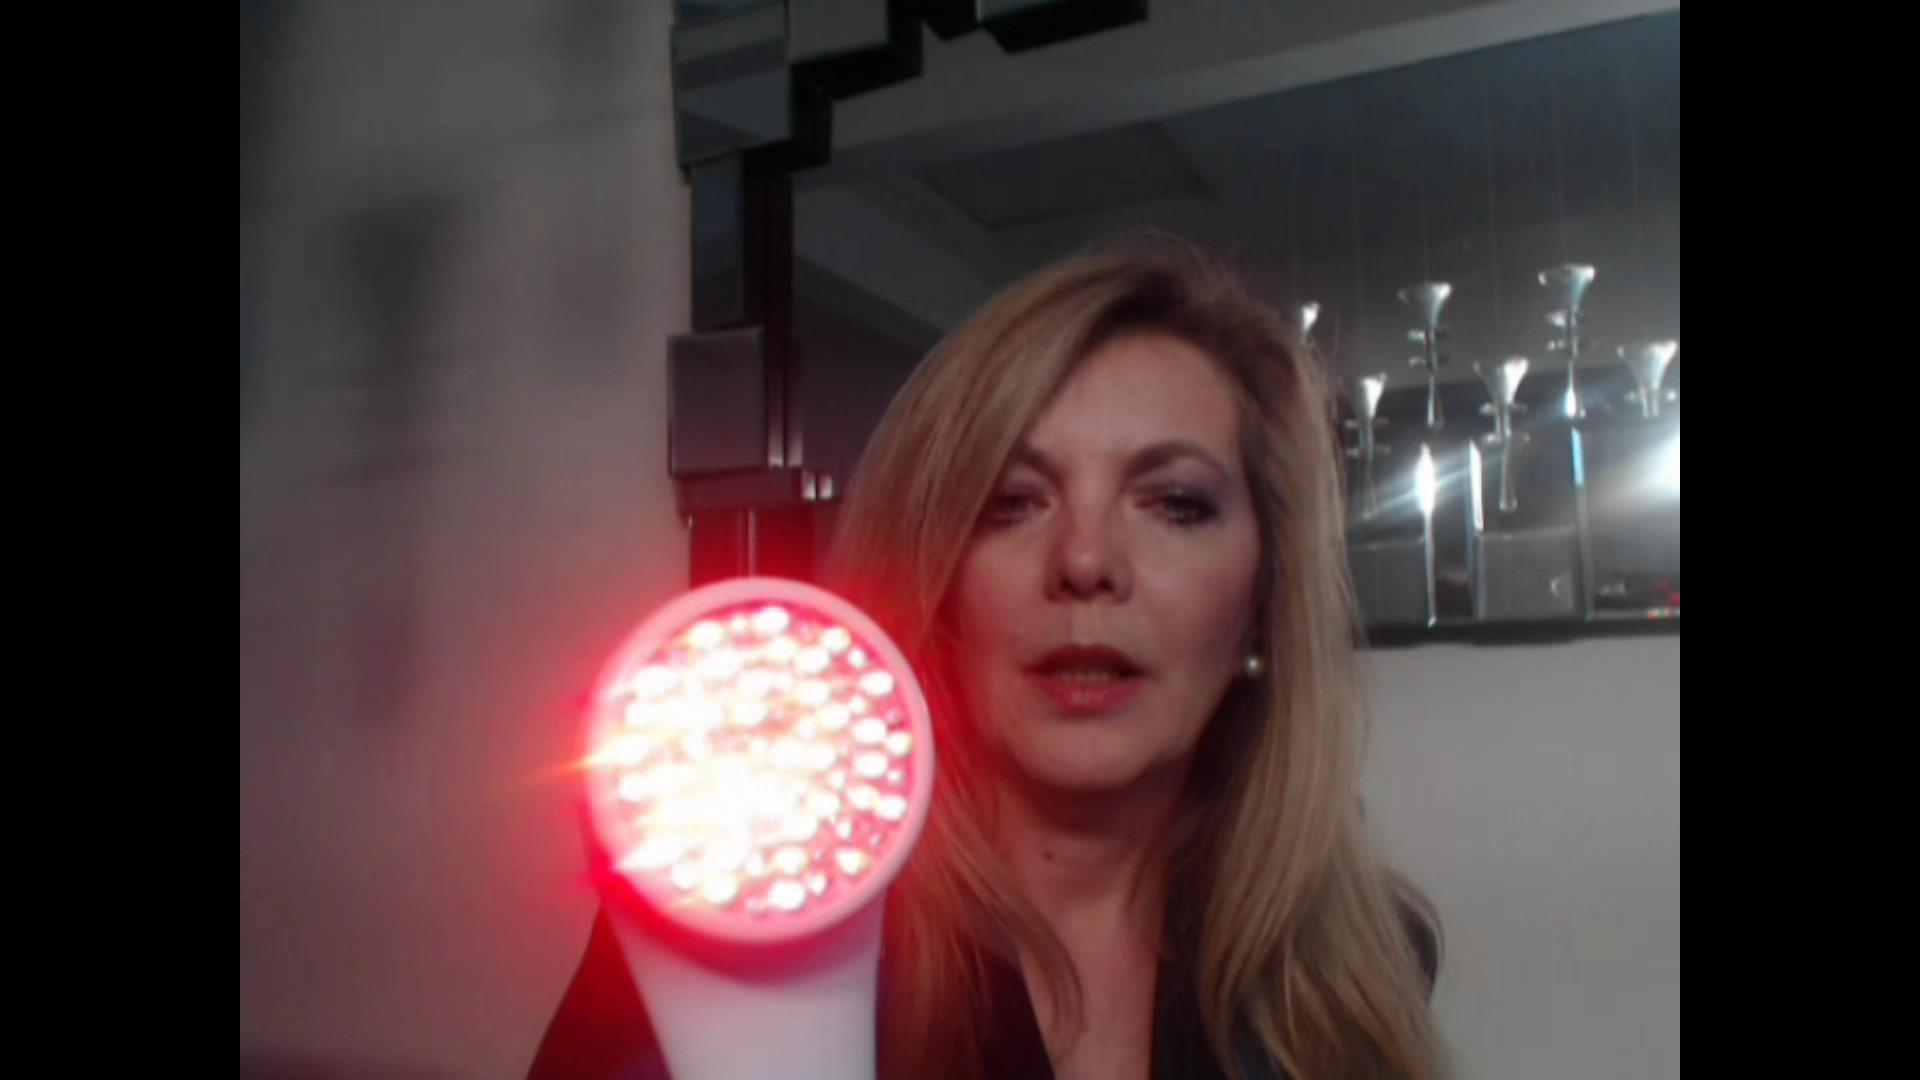 review of lightstim for wrinkles handheld led light device for the. Black Bedroom Furniture Sets. Home Design Ideas